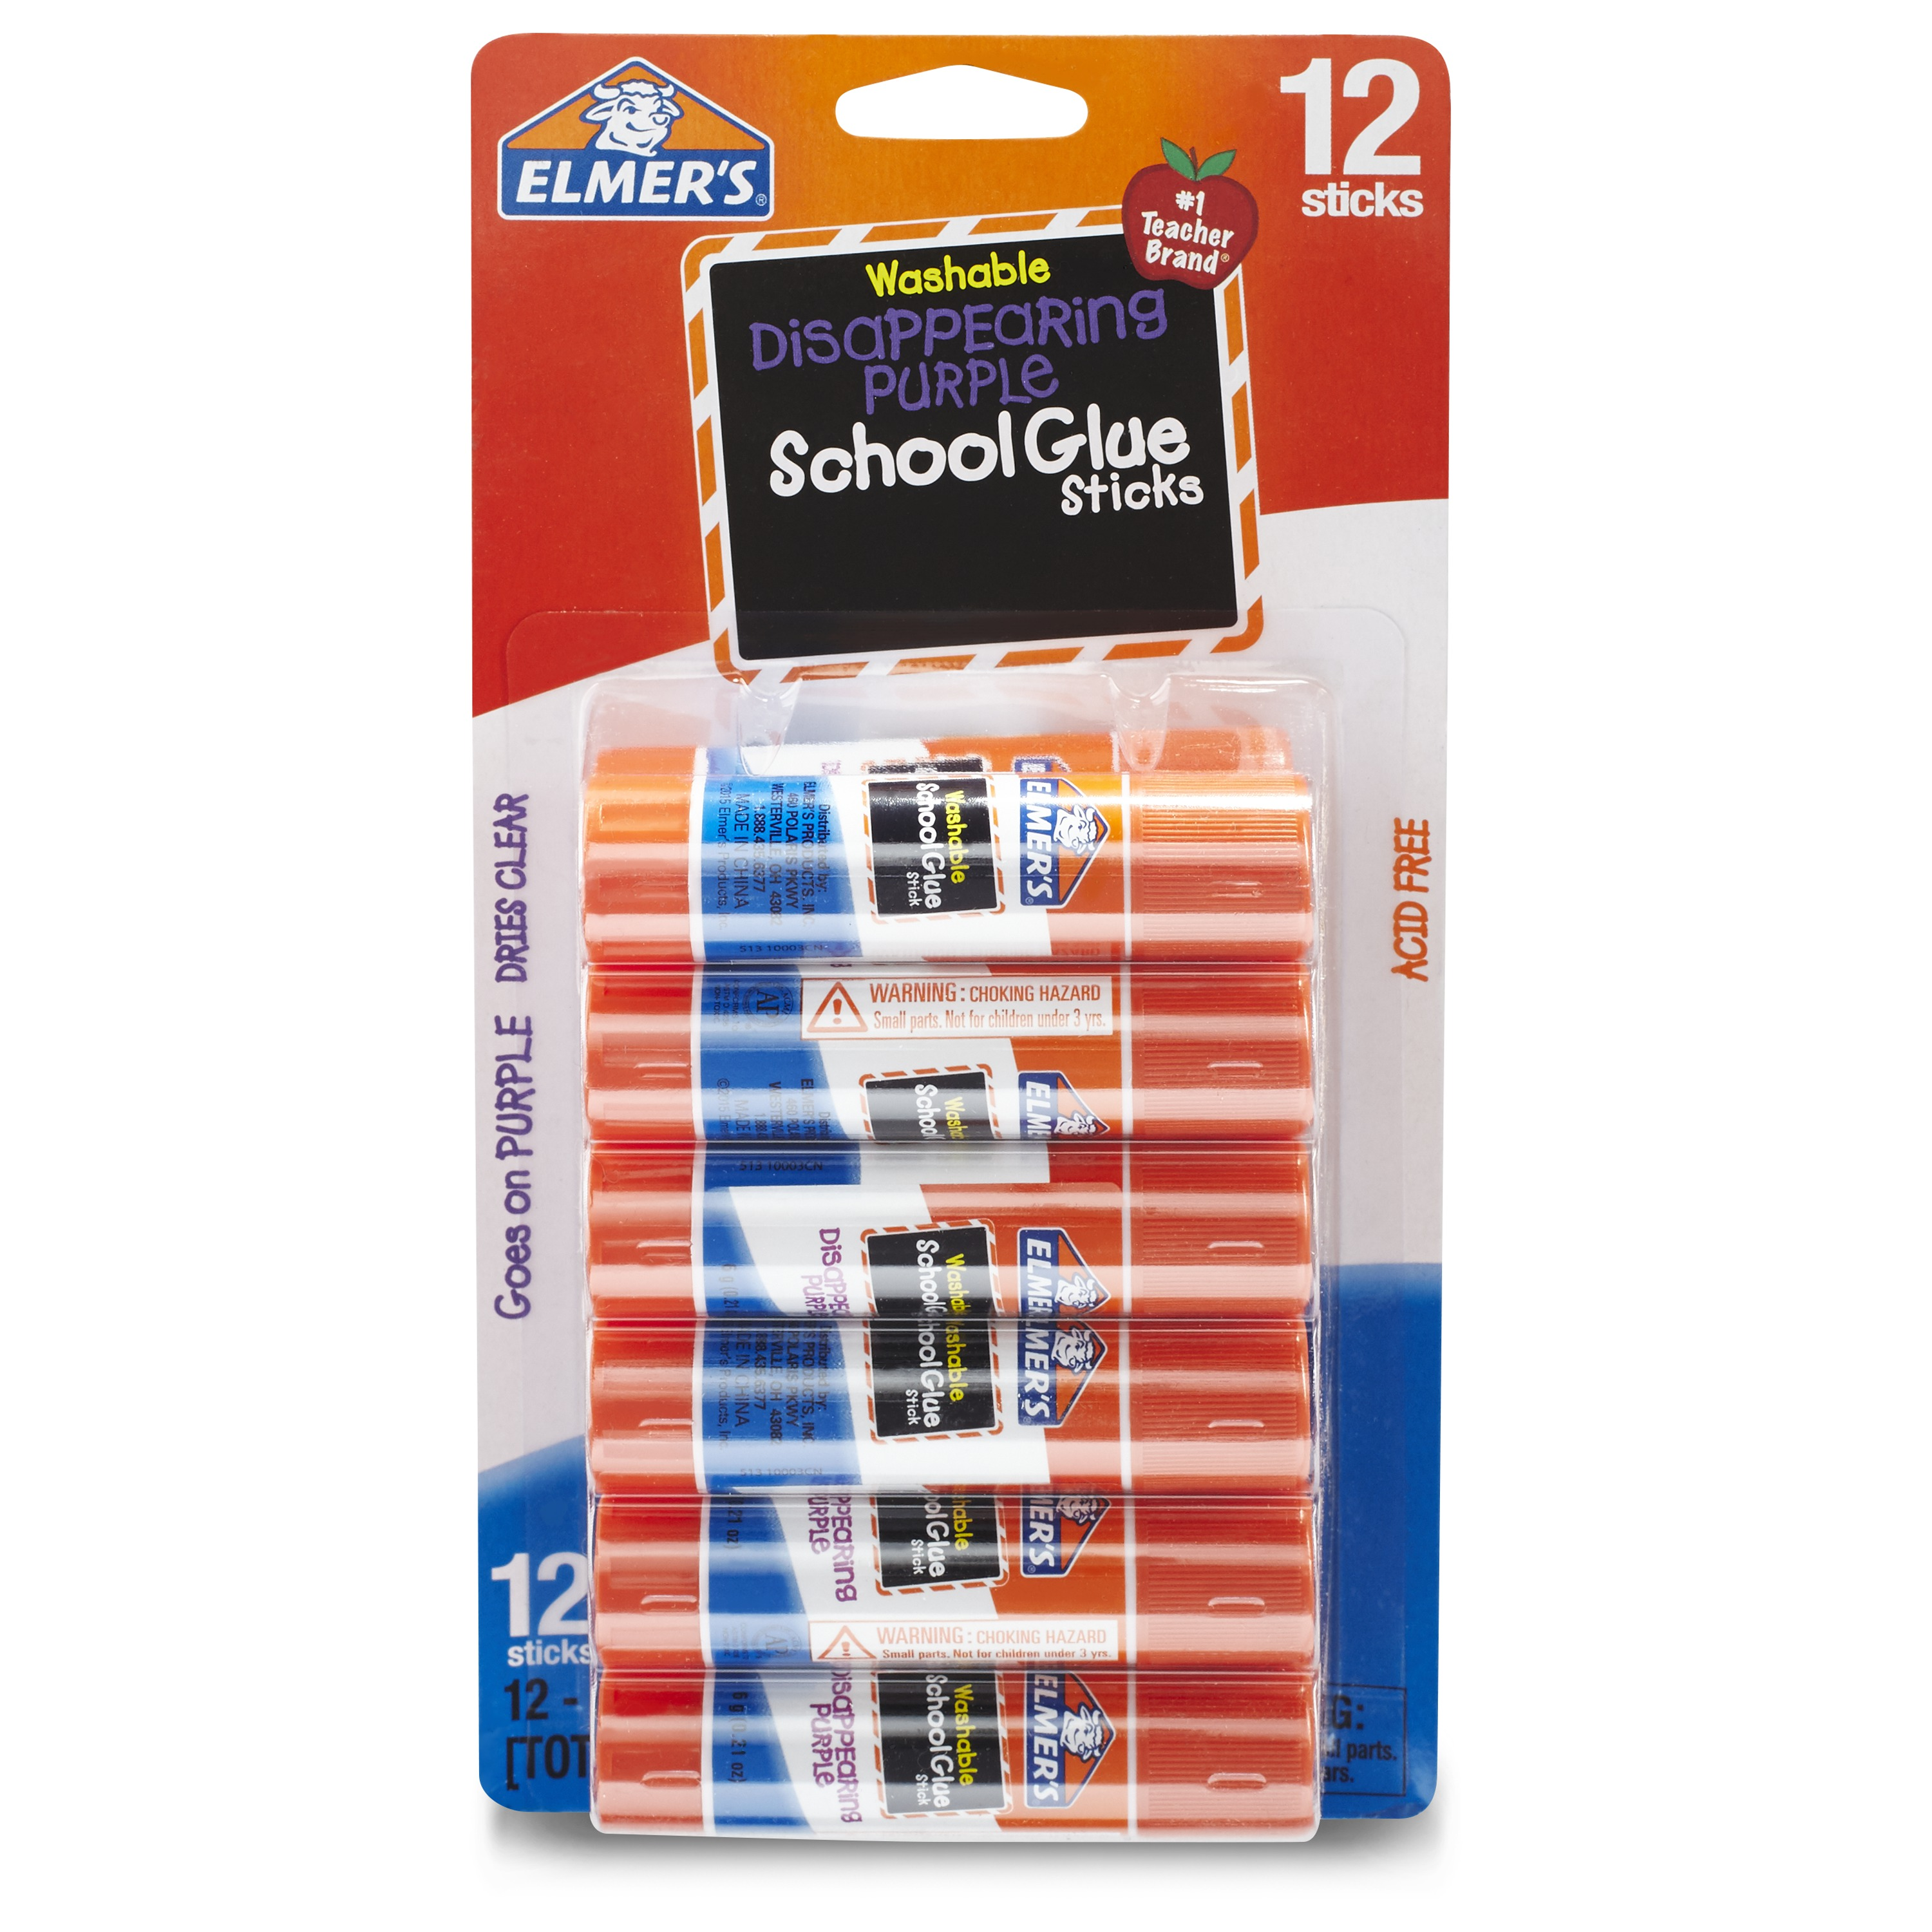 Elmer's Washable Disappearing Purple School Glue Sticks, 6g, 12-Pack